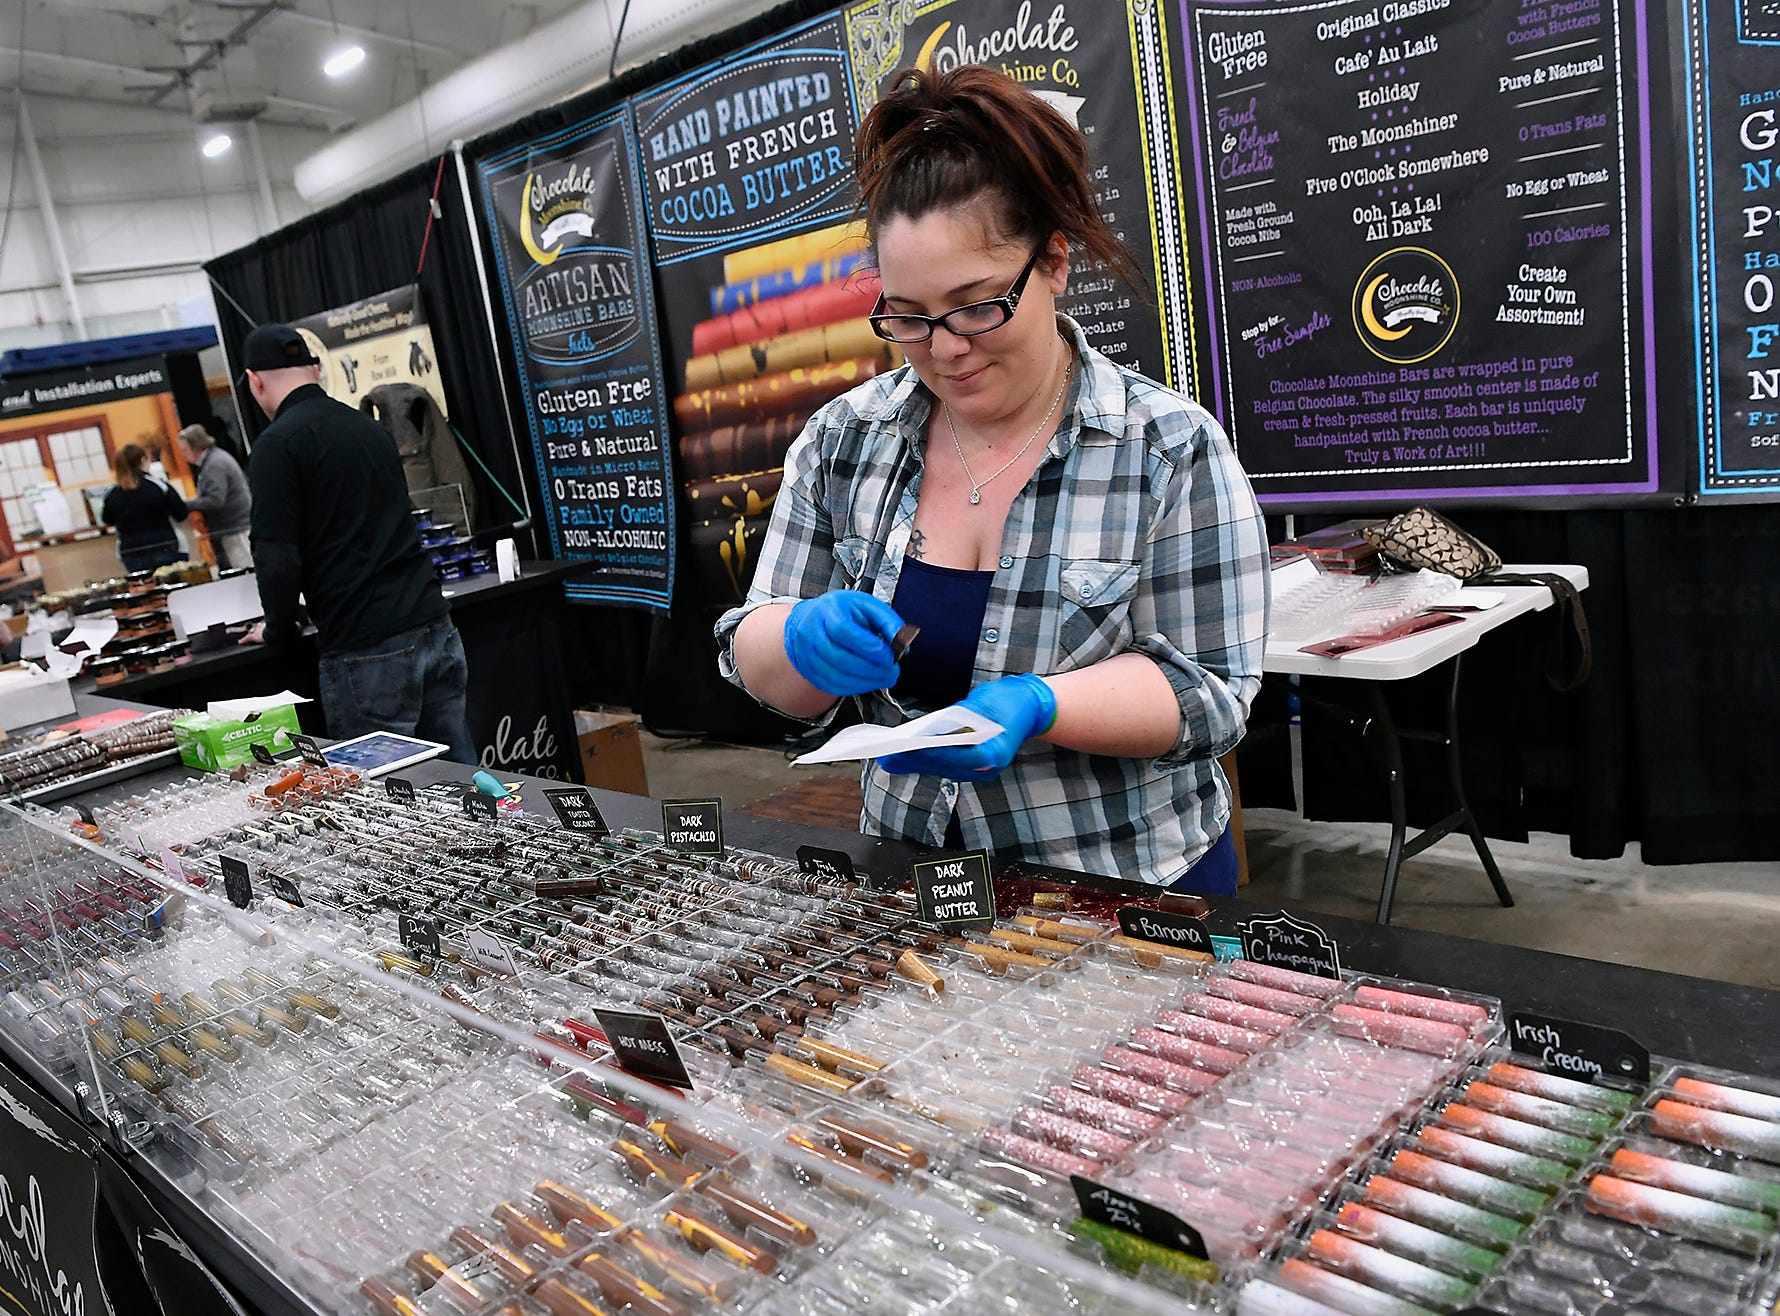 Kayla Nieder gathers chocolates for a customer at the Chocolate Moonshine Company booth at the York Builders Association Home & Garden Show in the Utz Arena, Sunday, February 10, 2019.John A. Pavoncello photo